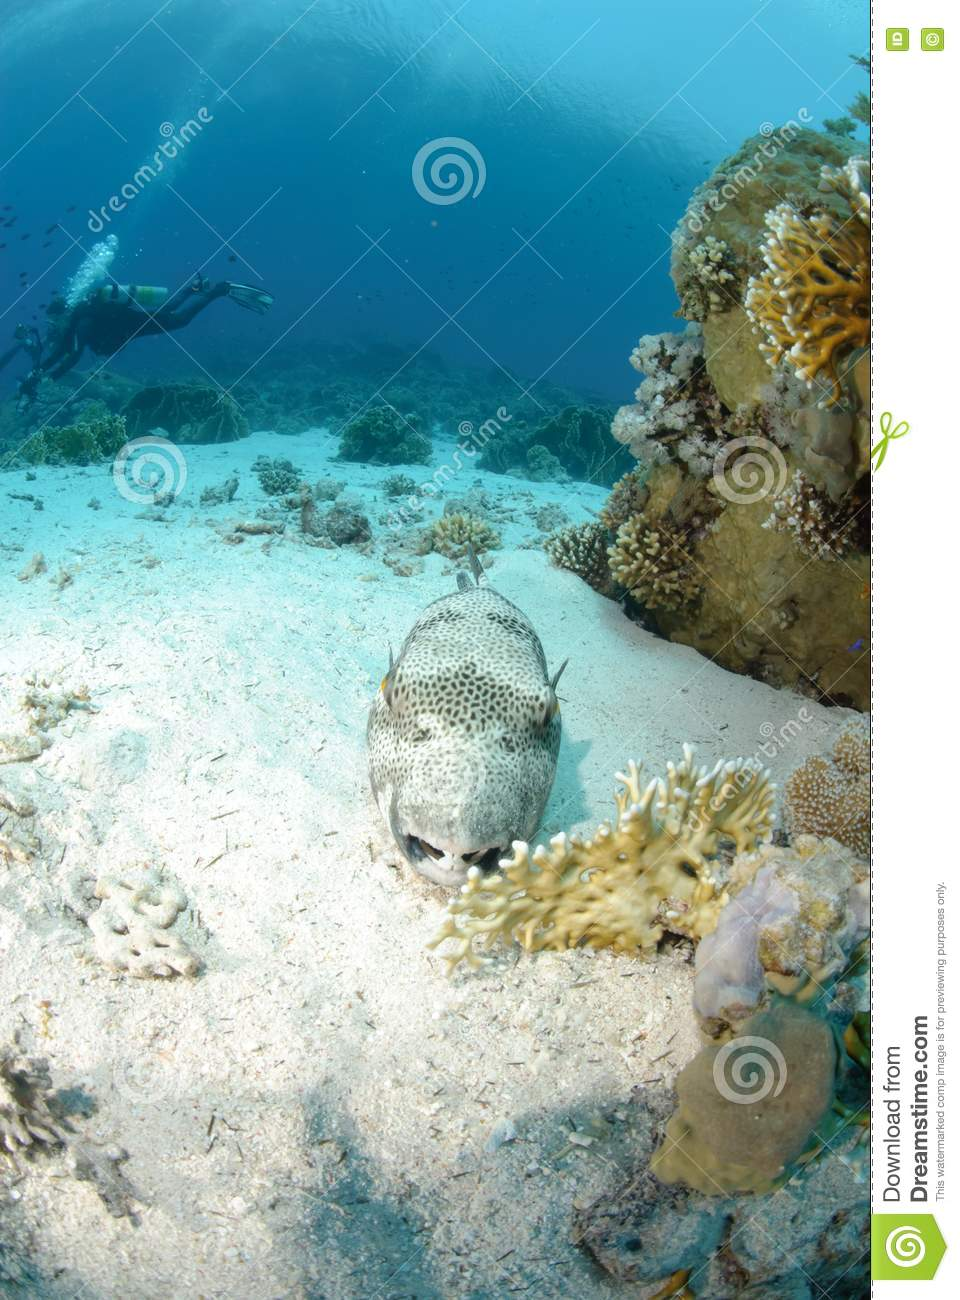 Giant puffer fish royalty free stock photo image 16600715 for Giant puffer fish